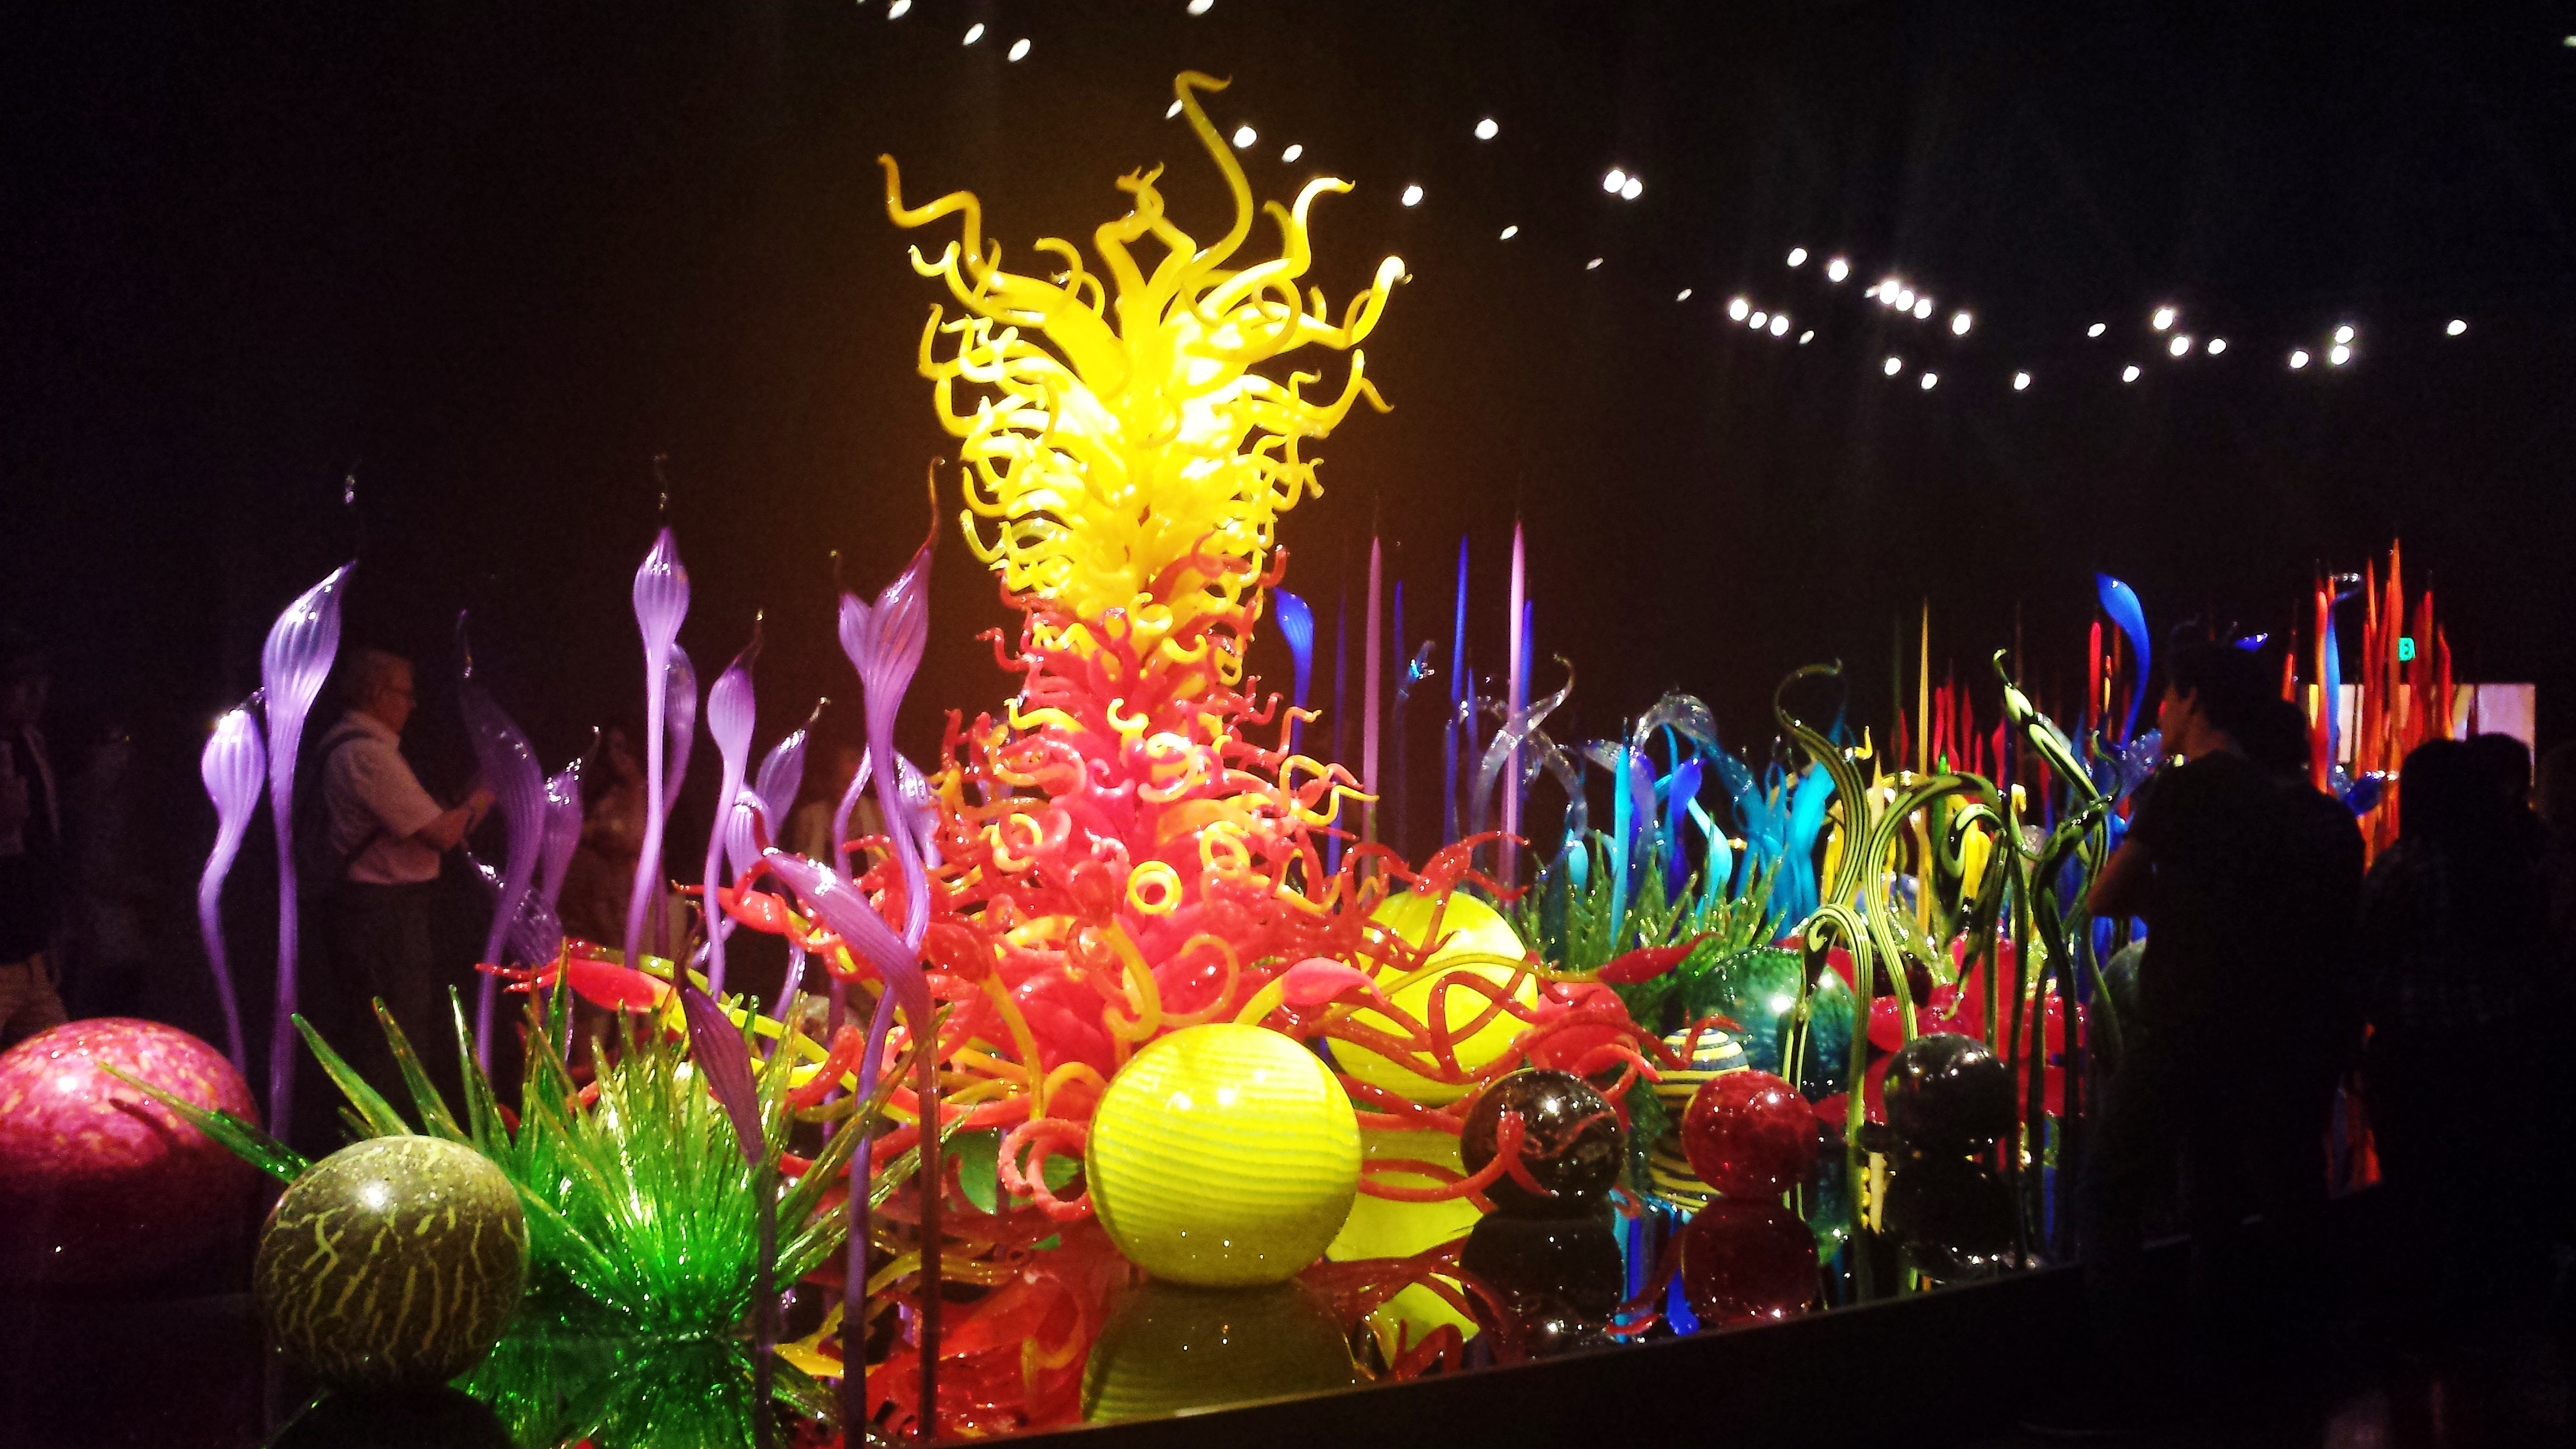 20130825_143540 - Chihuly Garden And Glass Seattle